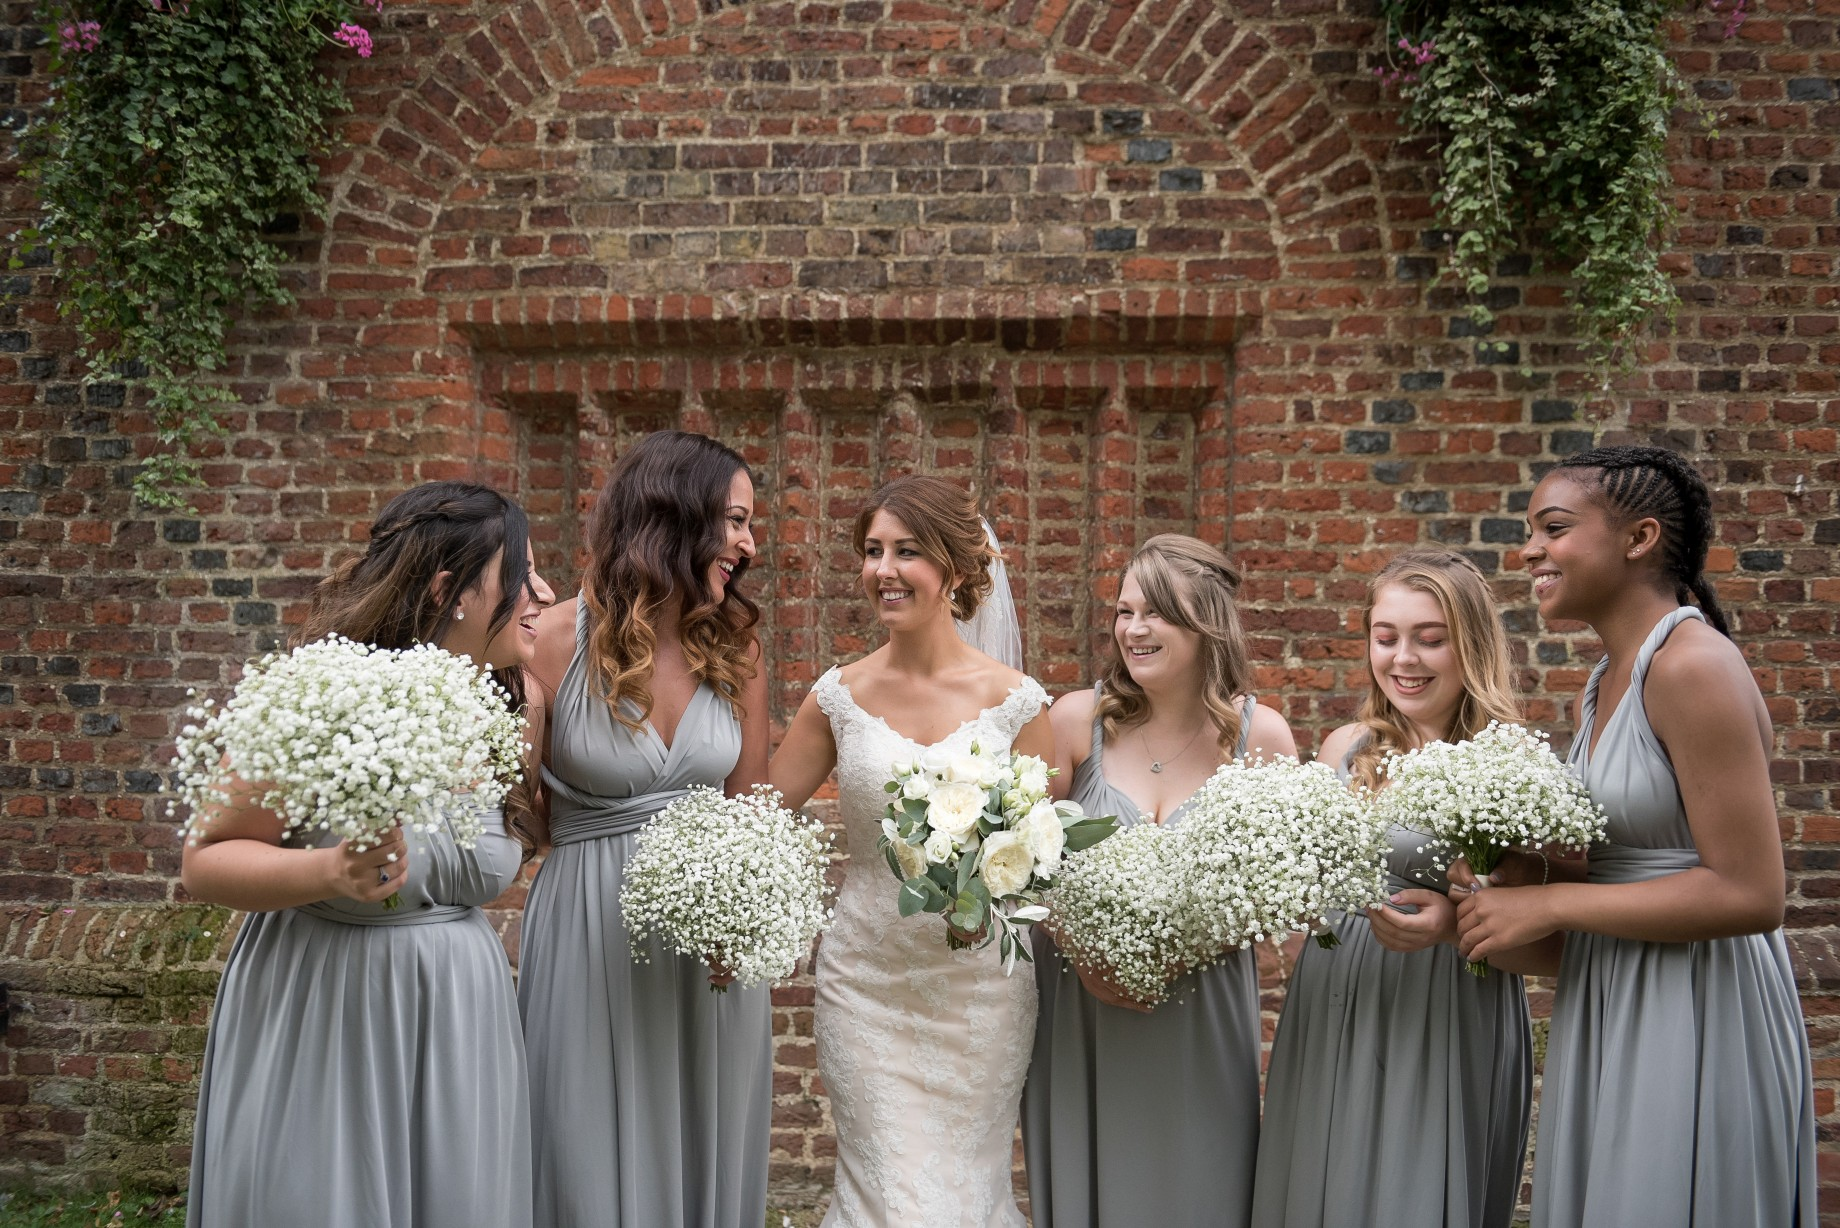 Wedding photography at Tudor Barn in Eltham - bride and bridesmaids